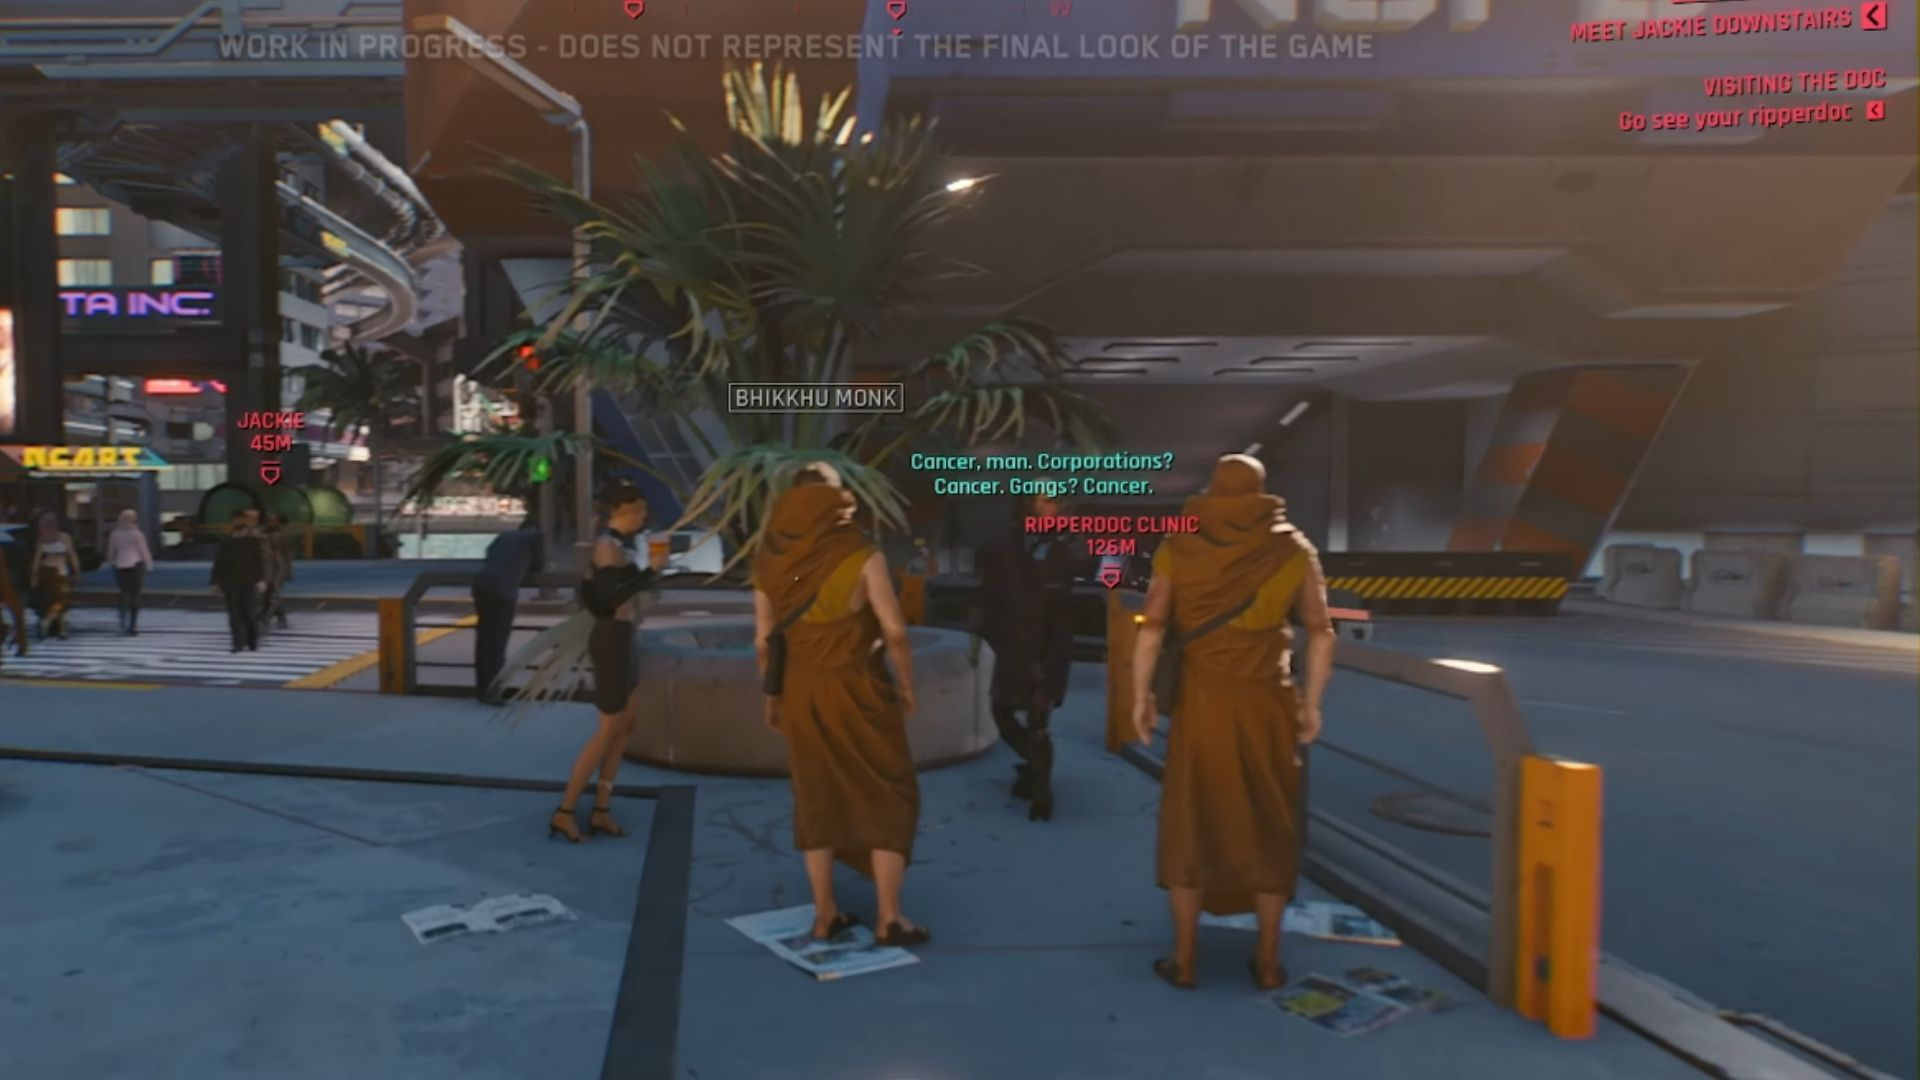 Monk NPCs in Cyberpunk 2077 and other NPCs listening in. An example of characters interacting with the world around them in the demo